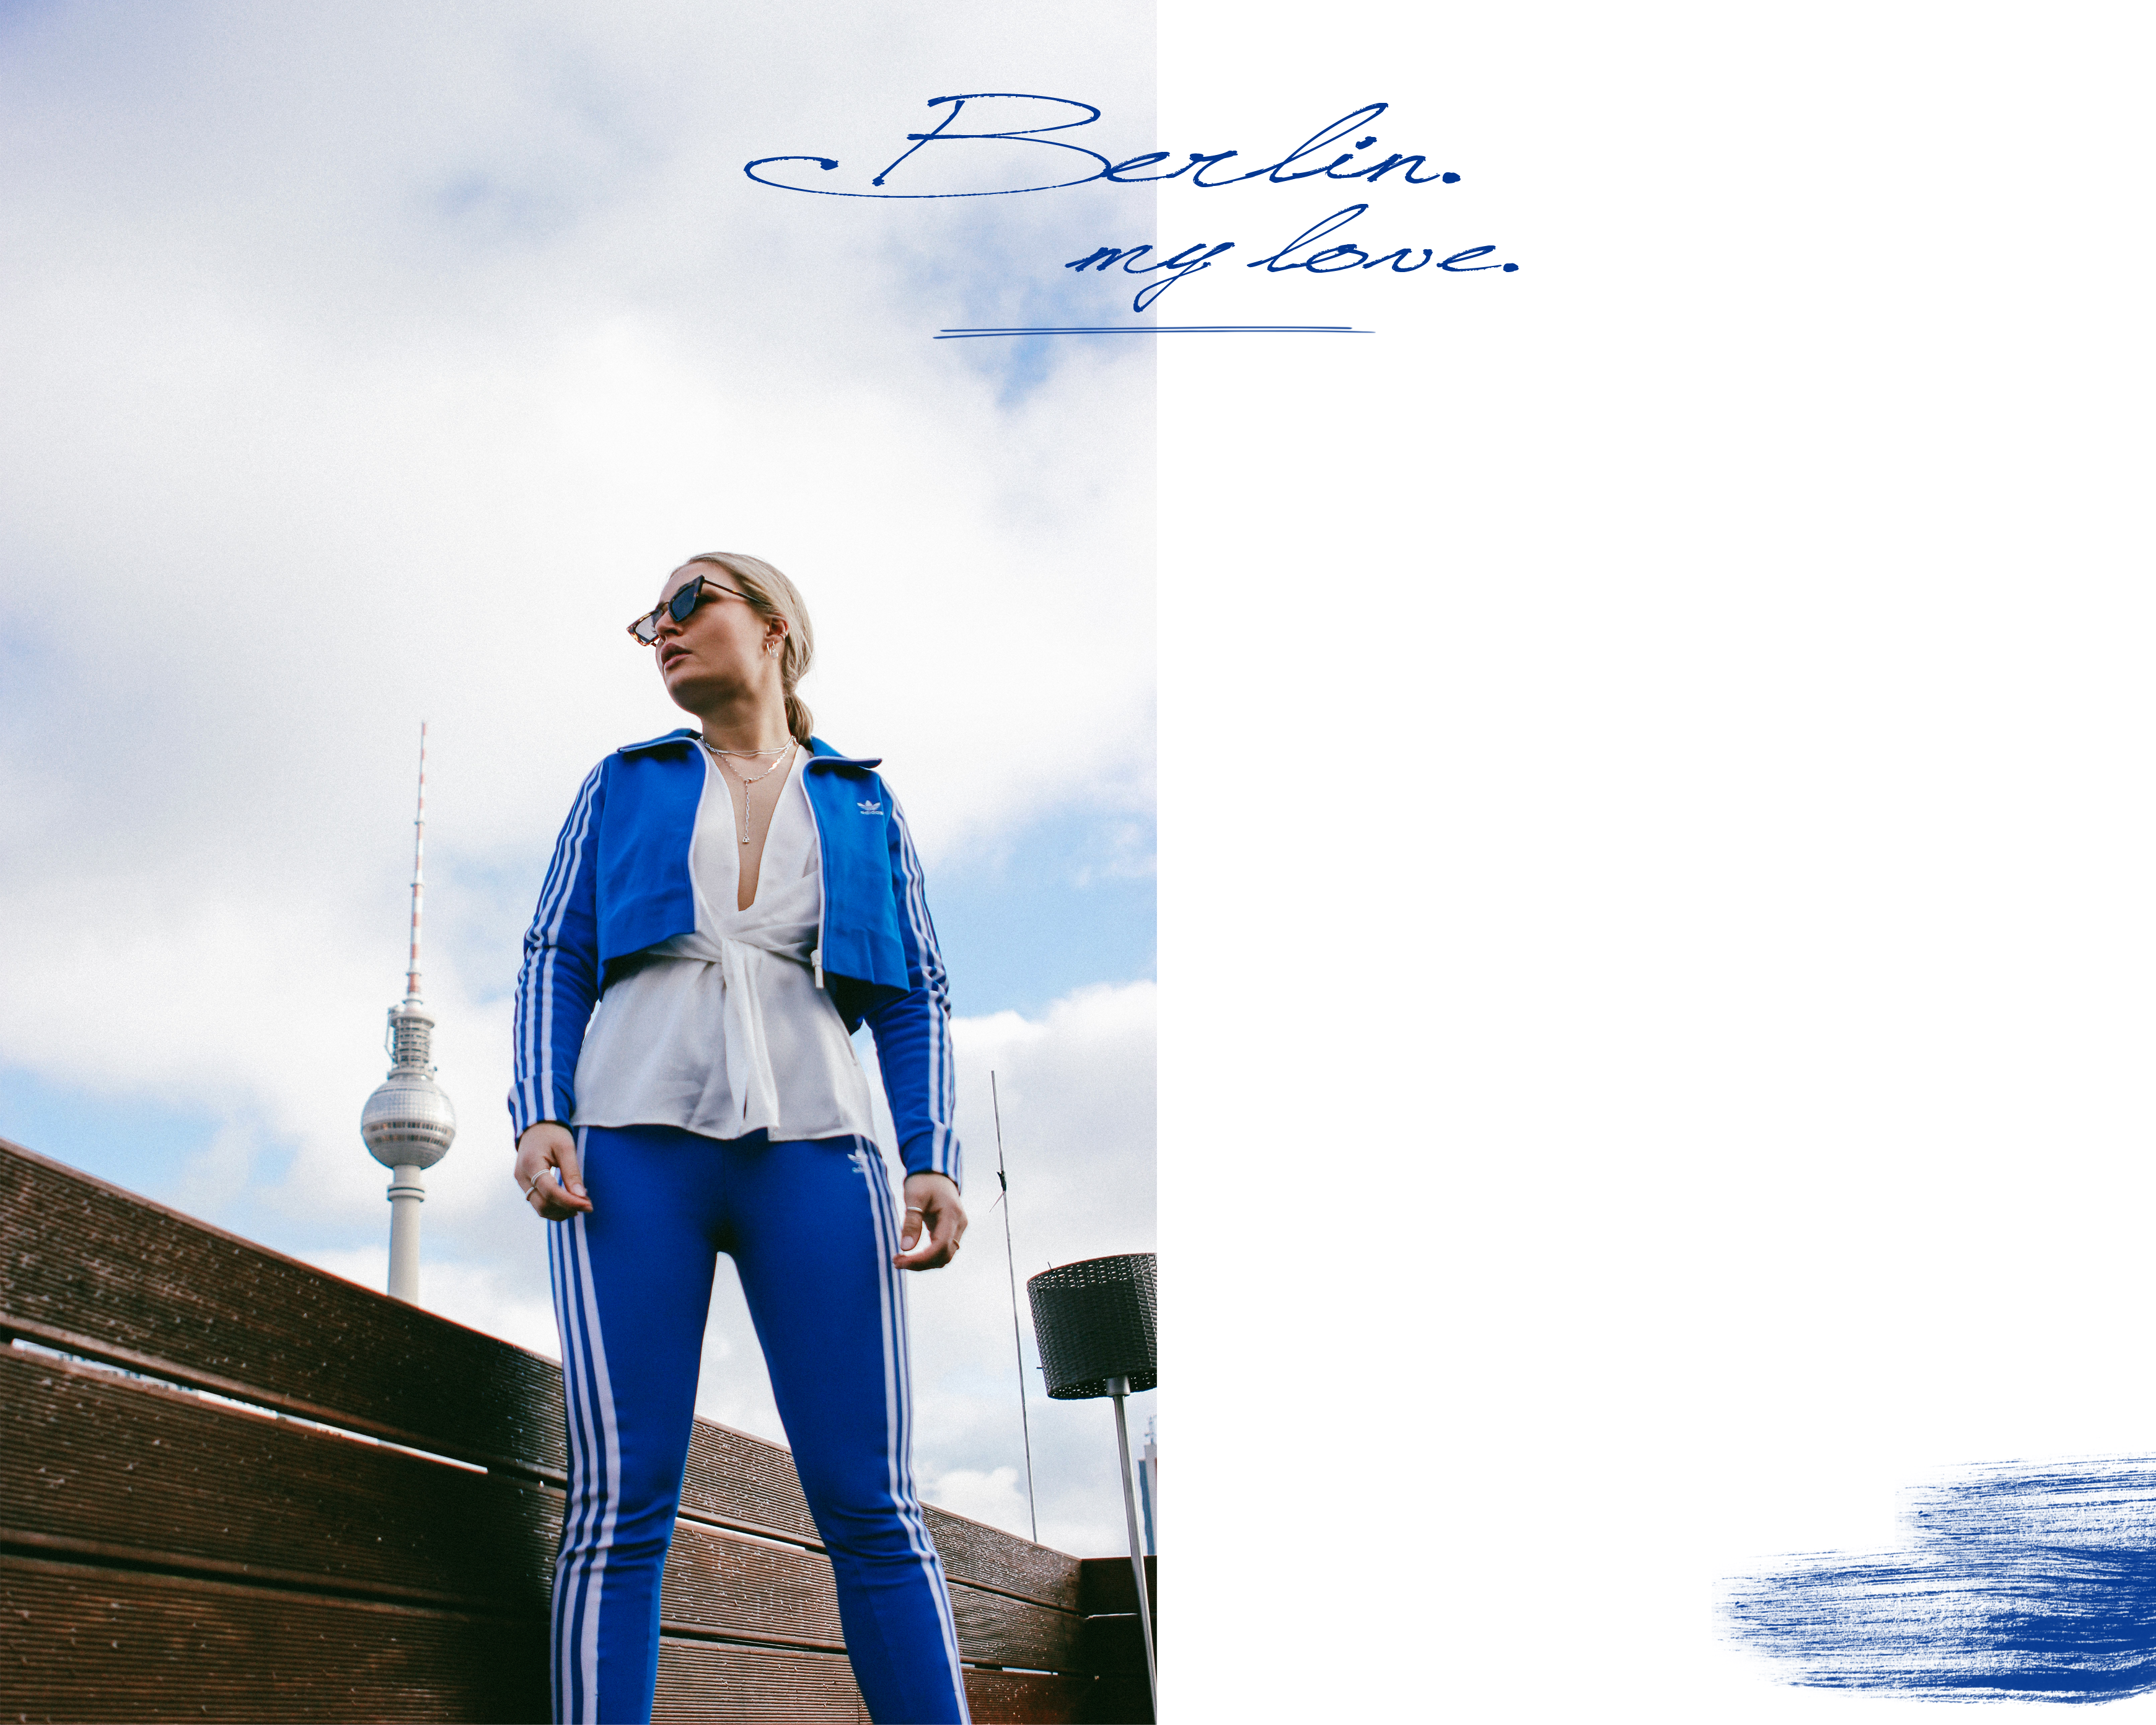 Lauralamode Adidas Adidas Originals Blogger Berlin Hotel Amano Outfit Ootd Streetstyle Style Inspiration Mango Tracksuit Look Fashion Fashionblogger Modeblogger